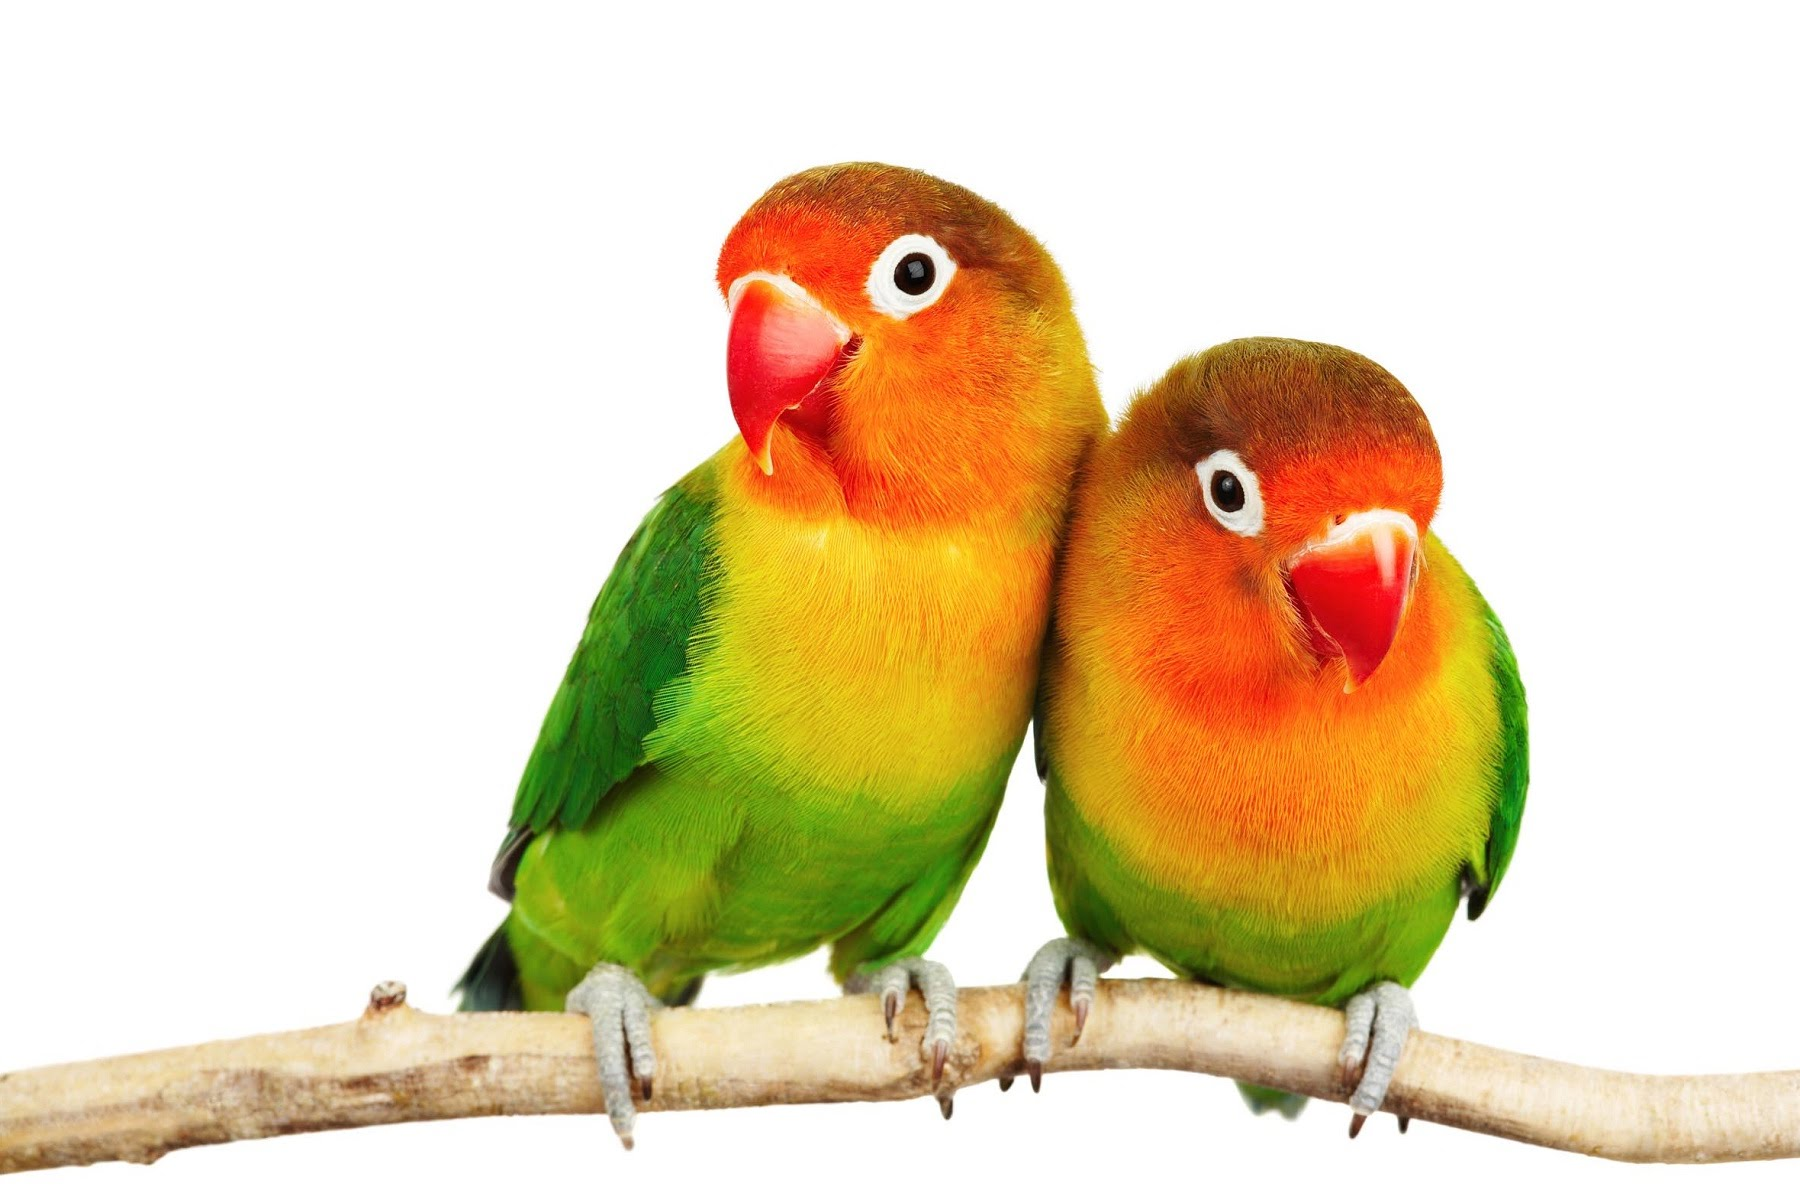 Love Birds In Tree Png - Lovebird PNG HD Transparent Lovebird HD.PNG Images. | PlusPNG